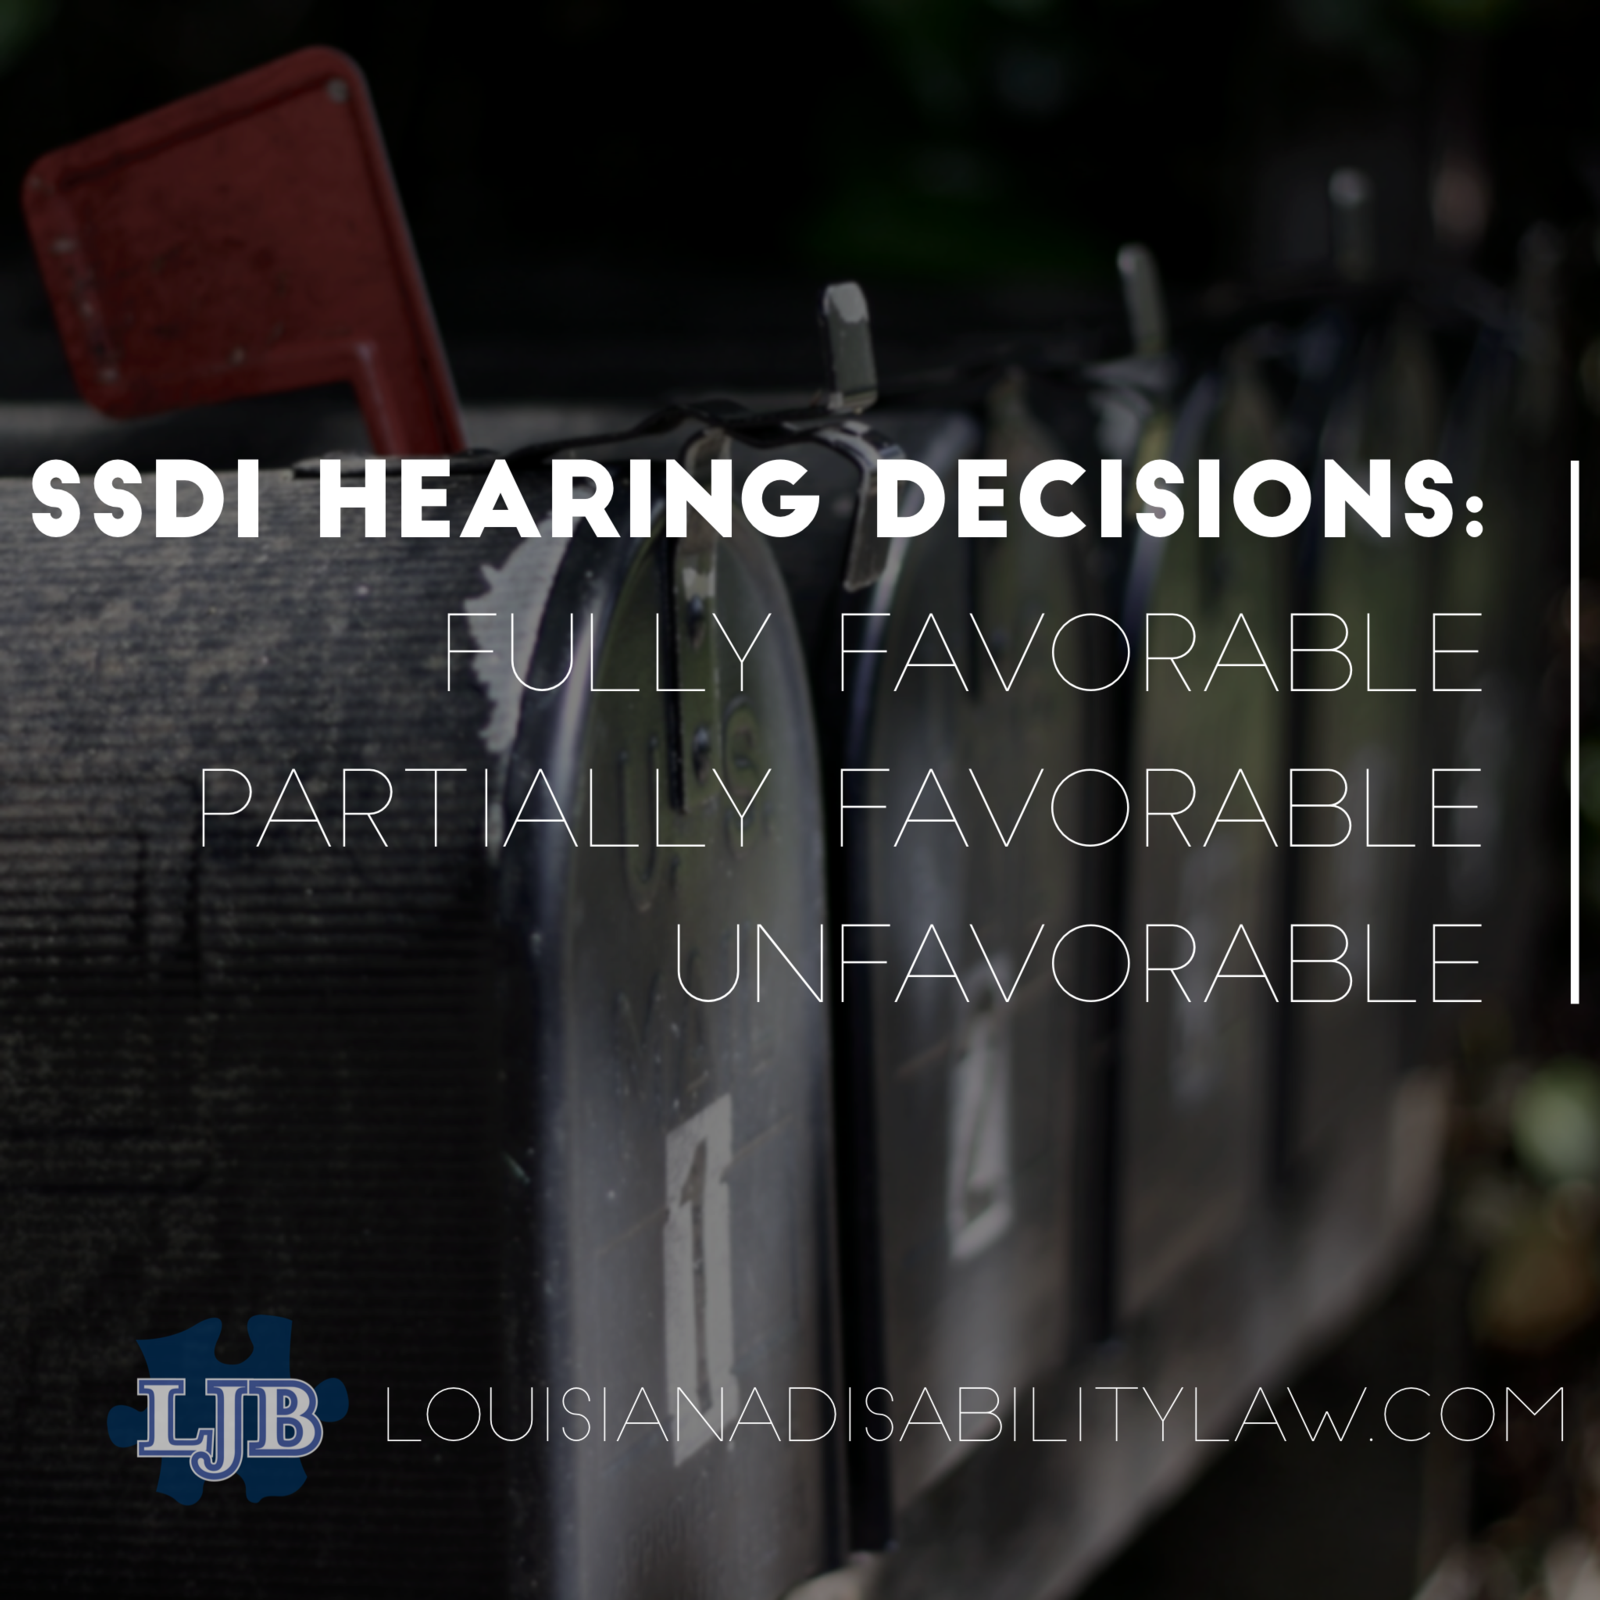 Hearing Decisions Favorable Unfavorable – What Does It Mean